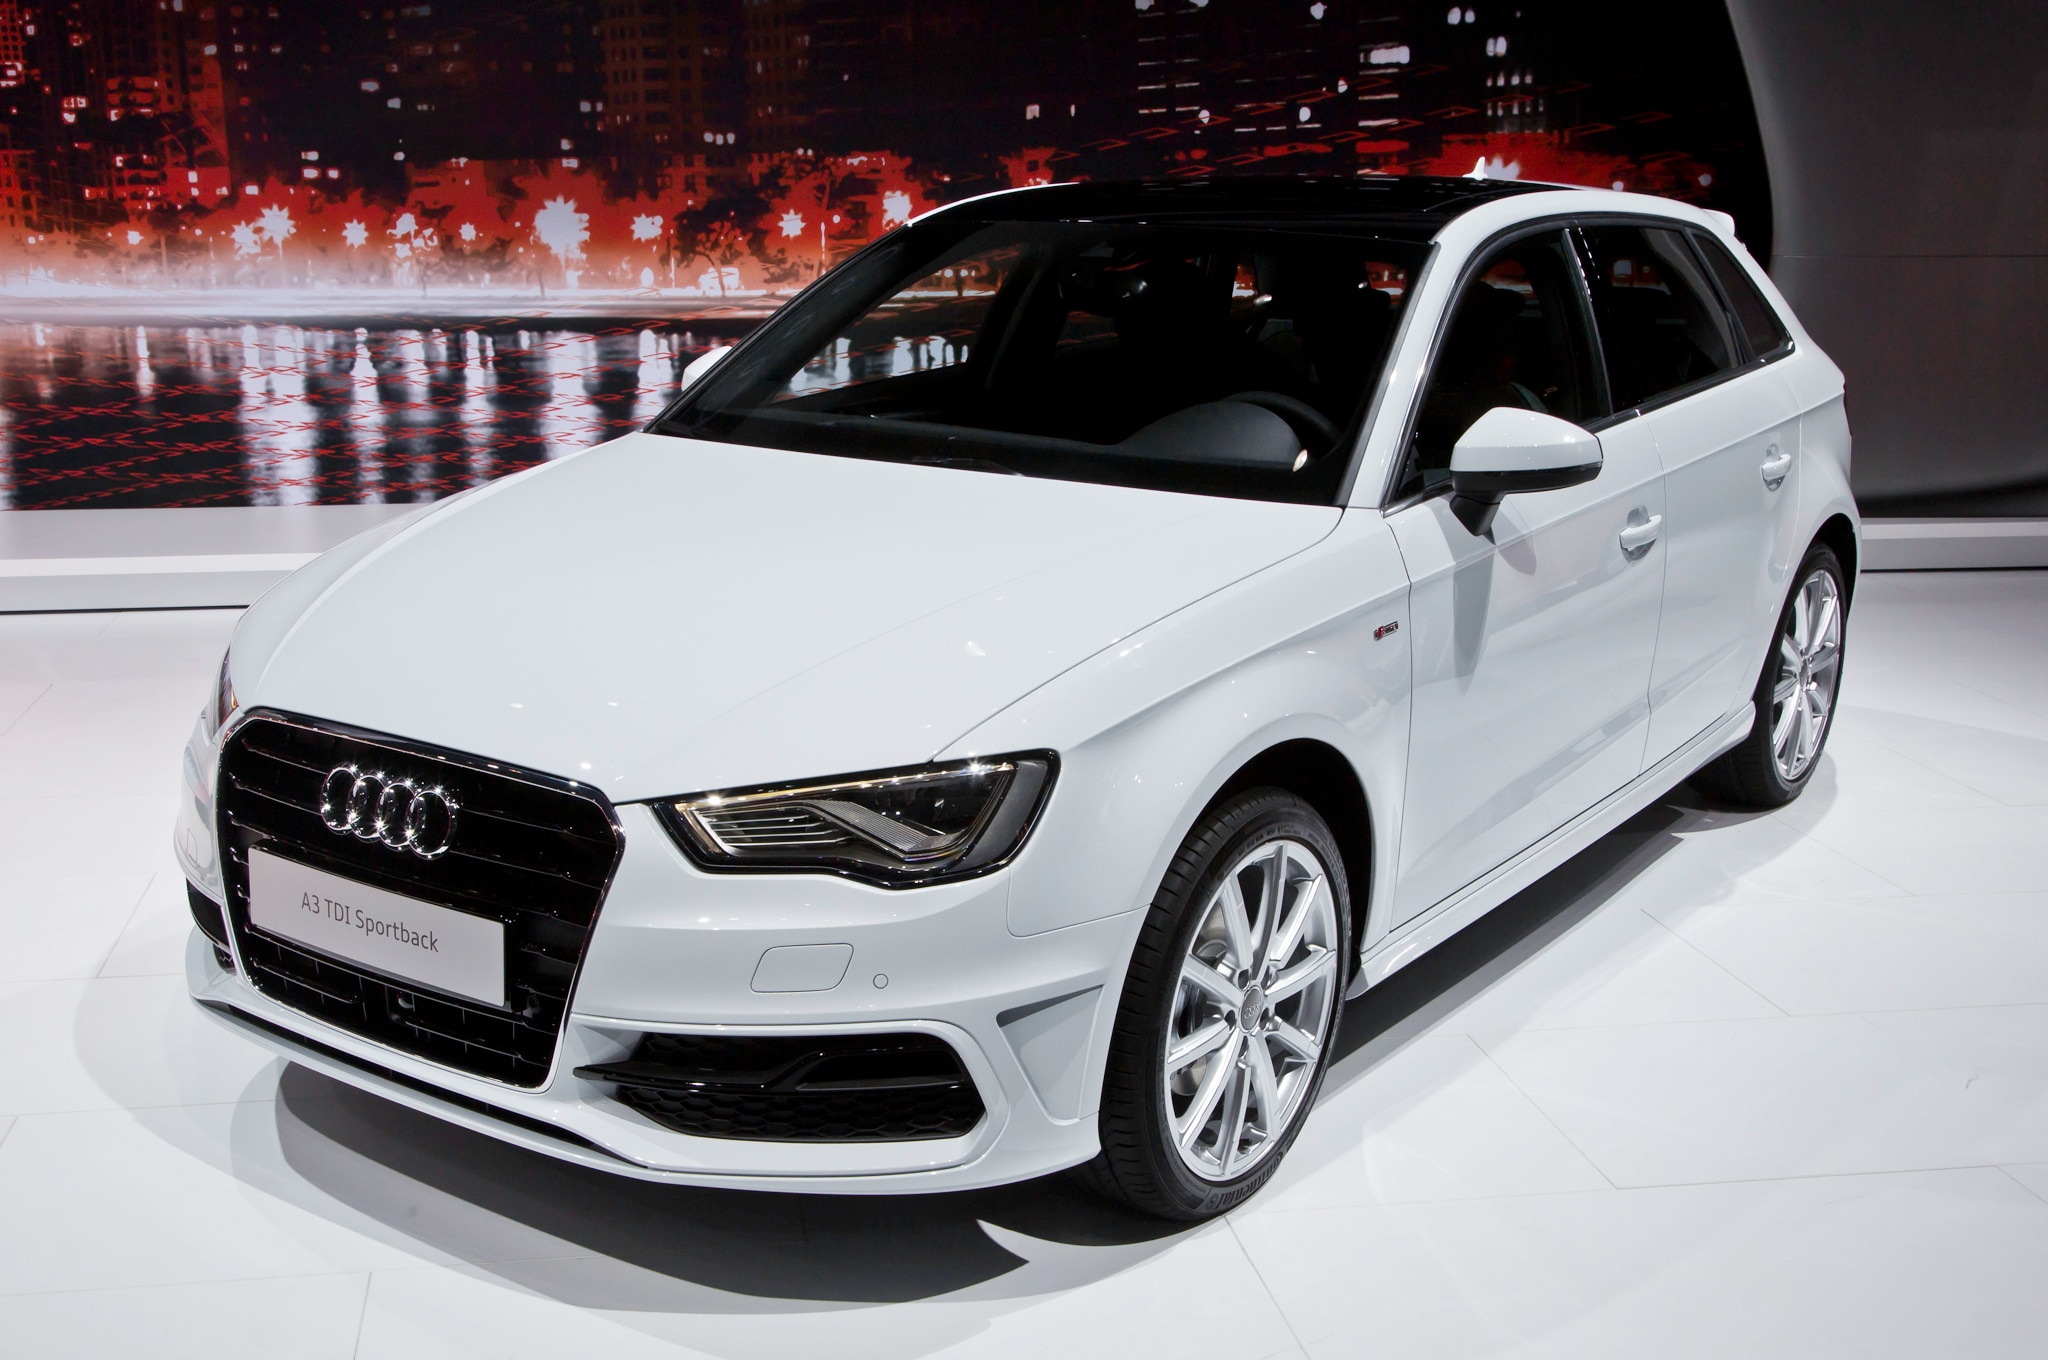 2016 Audi A3 Tdi Hatchback Joins Lineup Automobile Magazine